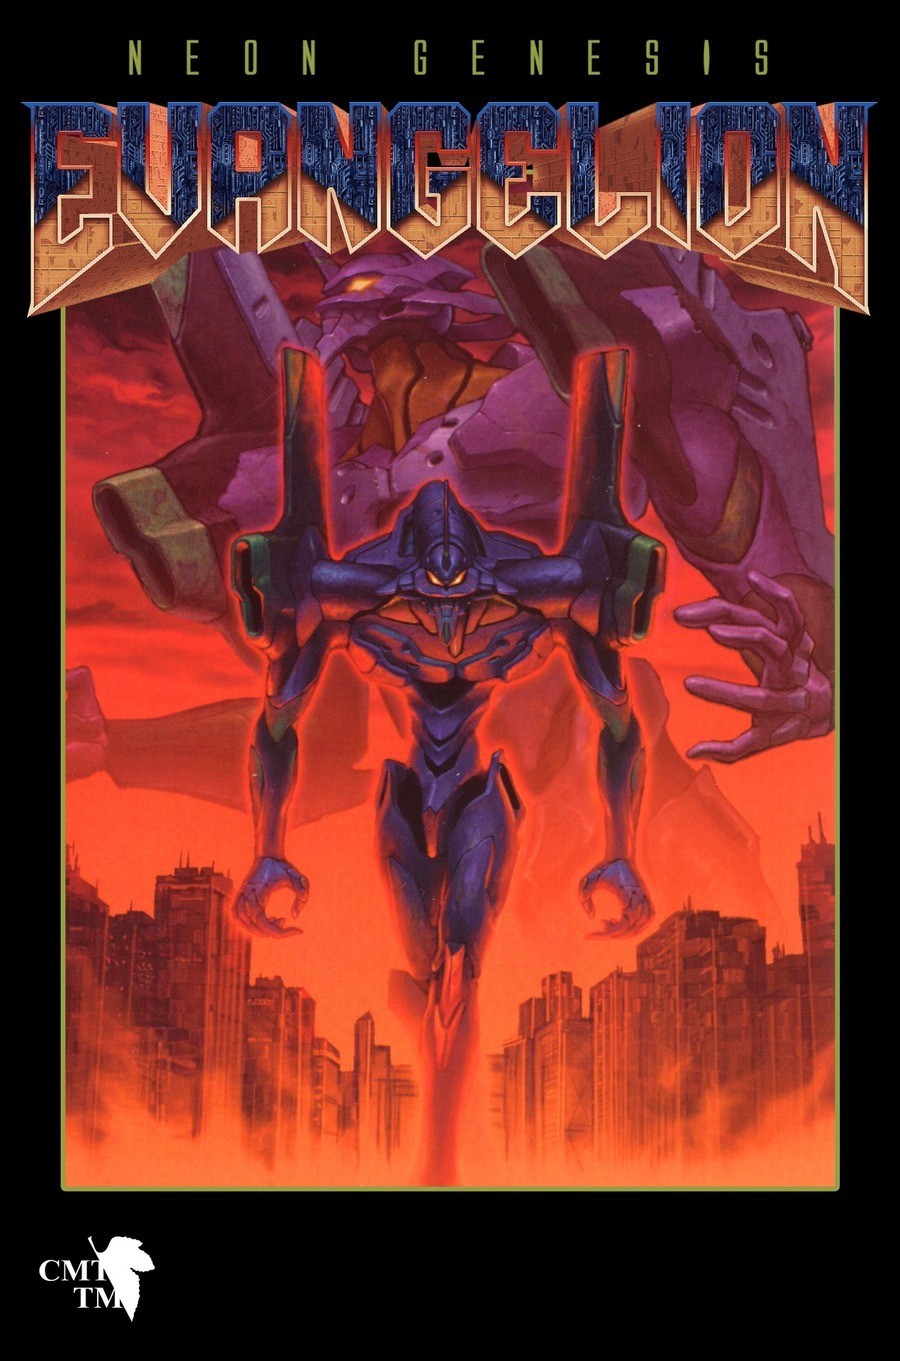 Evangelion Doom Style. .. 10/10, would play. Although it's extremely ironic. Doomguy could give less of a about anything and everything that's happening. He's just in constant rage mode.